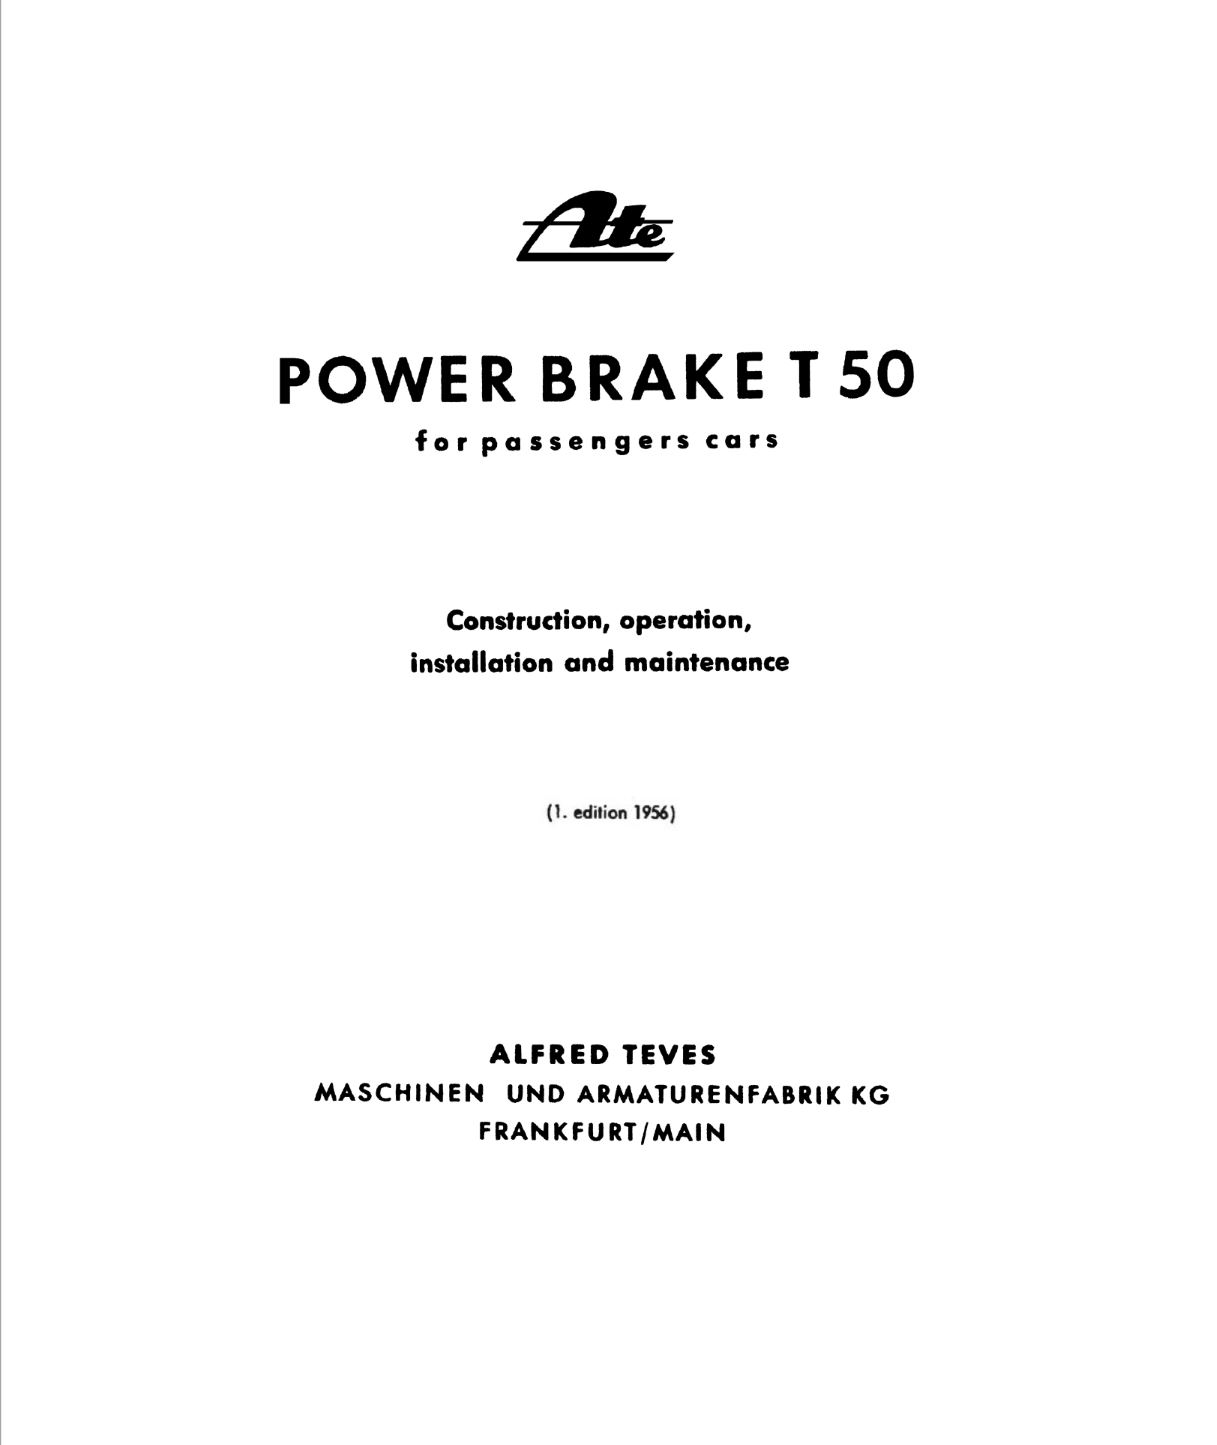 ATE Power Brake T50 for passenger cars, Construction, operation, installation and maintenance, © ATE